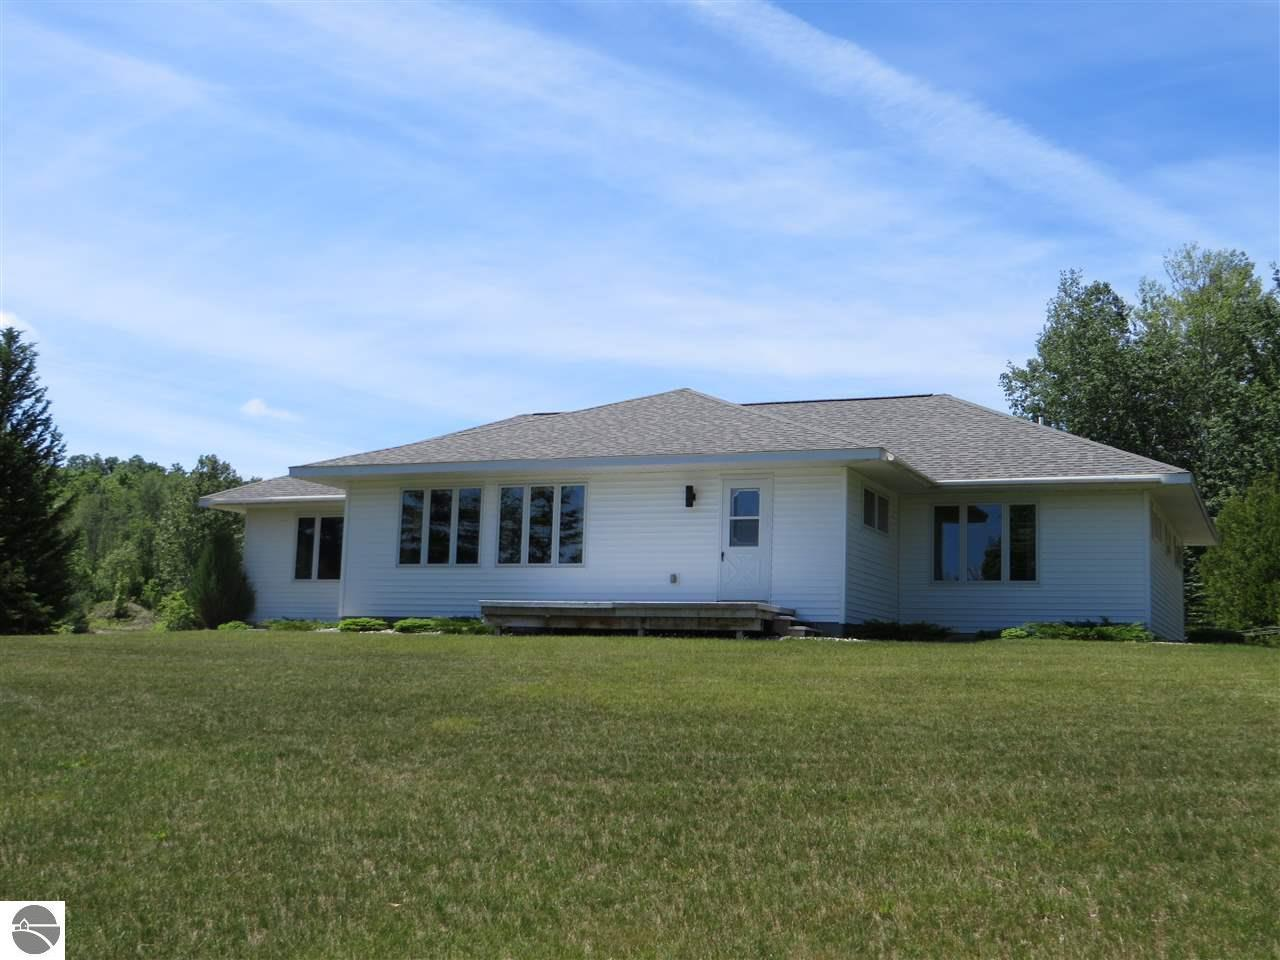 single men over 50 in lake leelanau This single-family home is located at 3100 e overby rd, lake leelanau, mi 3100 e overby rd is in lake leelanau, mi and in zip code 49653 3100 e overby rd.